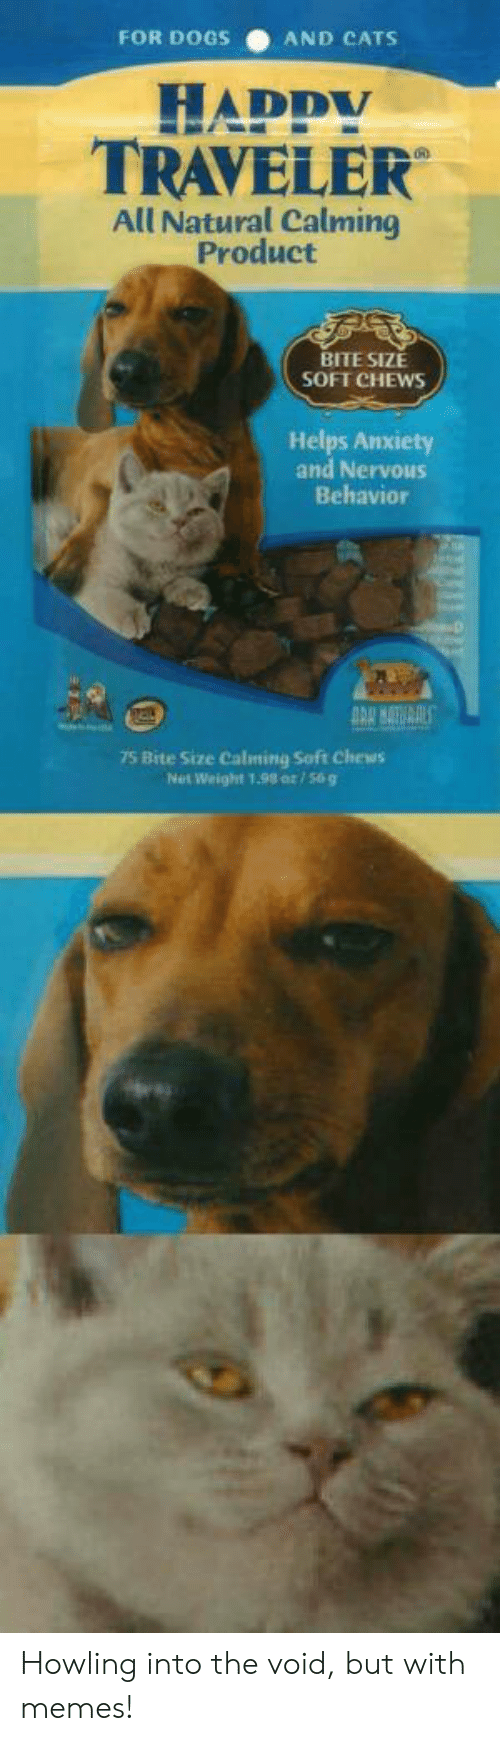 Cats, Dogs, and Memes: FOR DOGS  AND CATS  HADDY  TRAVELER  All Natural Calming  Product  BITE SIZE  SOFT CHEWS  Helps Anxiety  and Nervous  Behavior  75 Bite Size Calming Soft Chews  Net Weight 1.98 or/56g Howling into the void, but with memes!